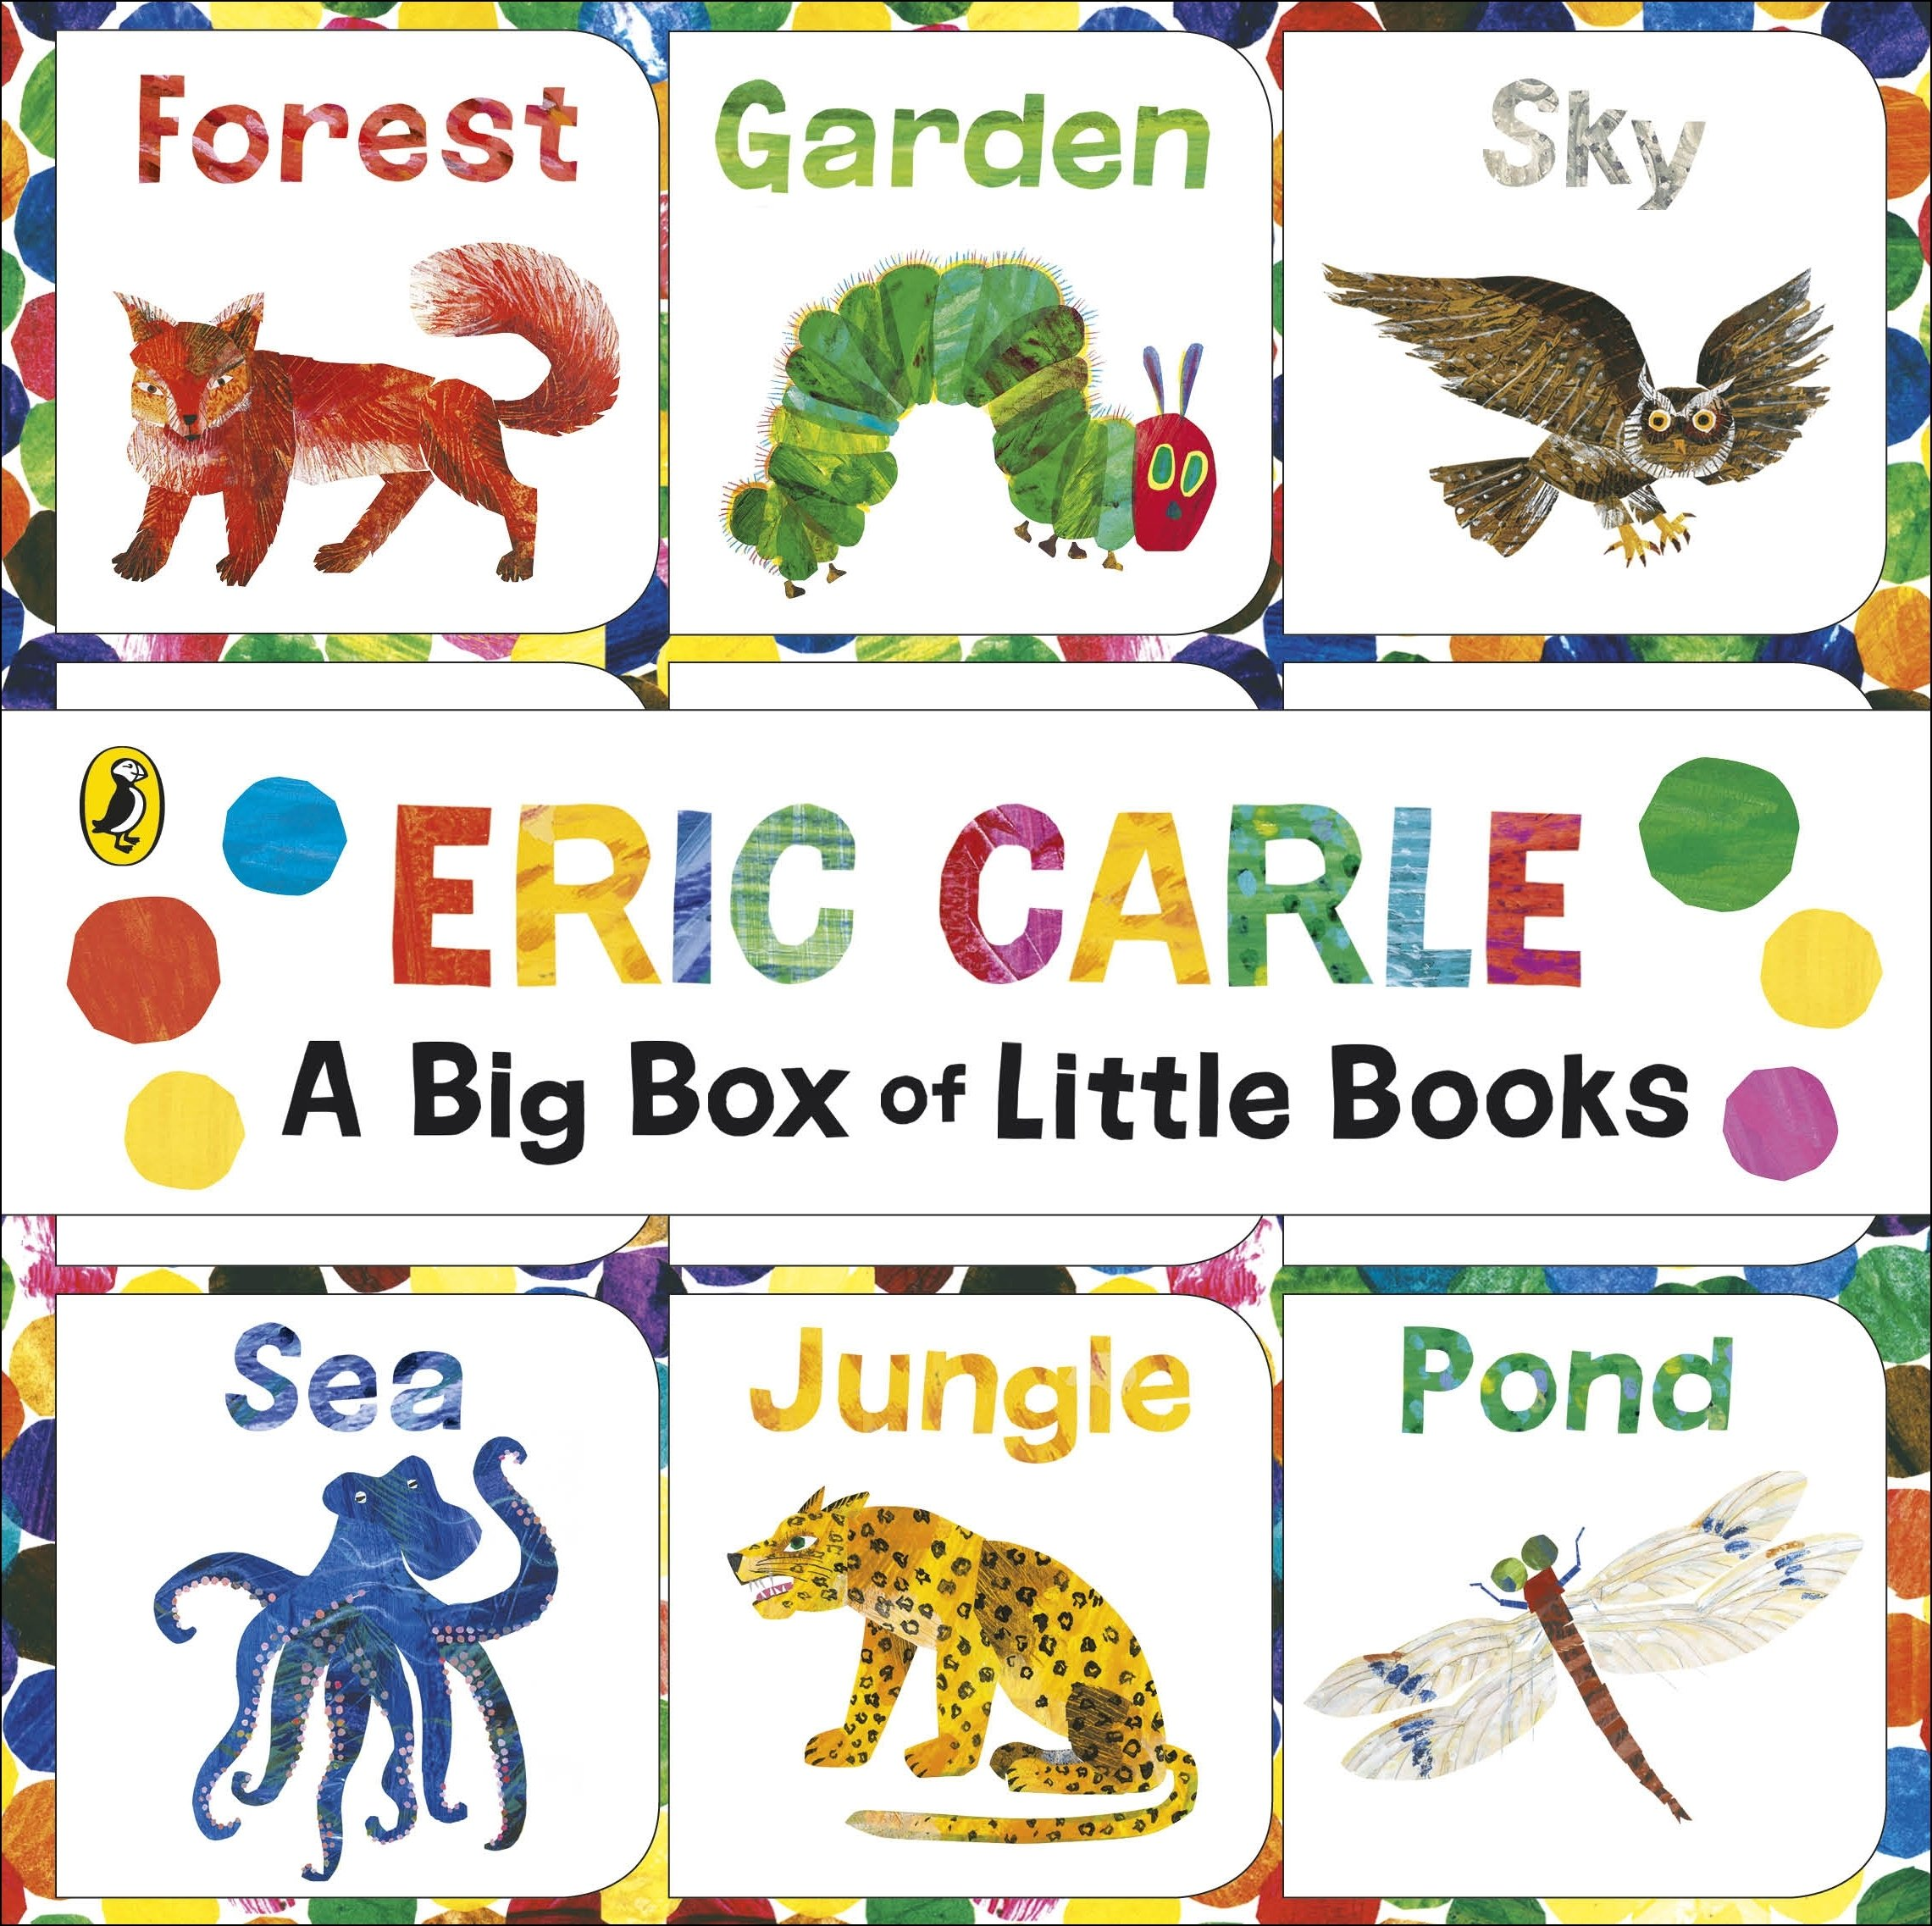 The World of Eric Carle: Big Box of Little Books